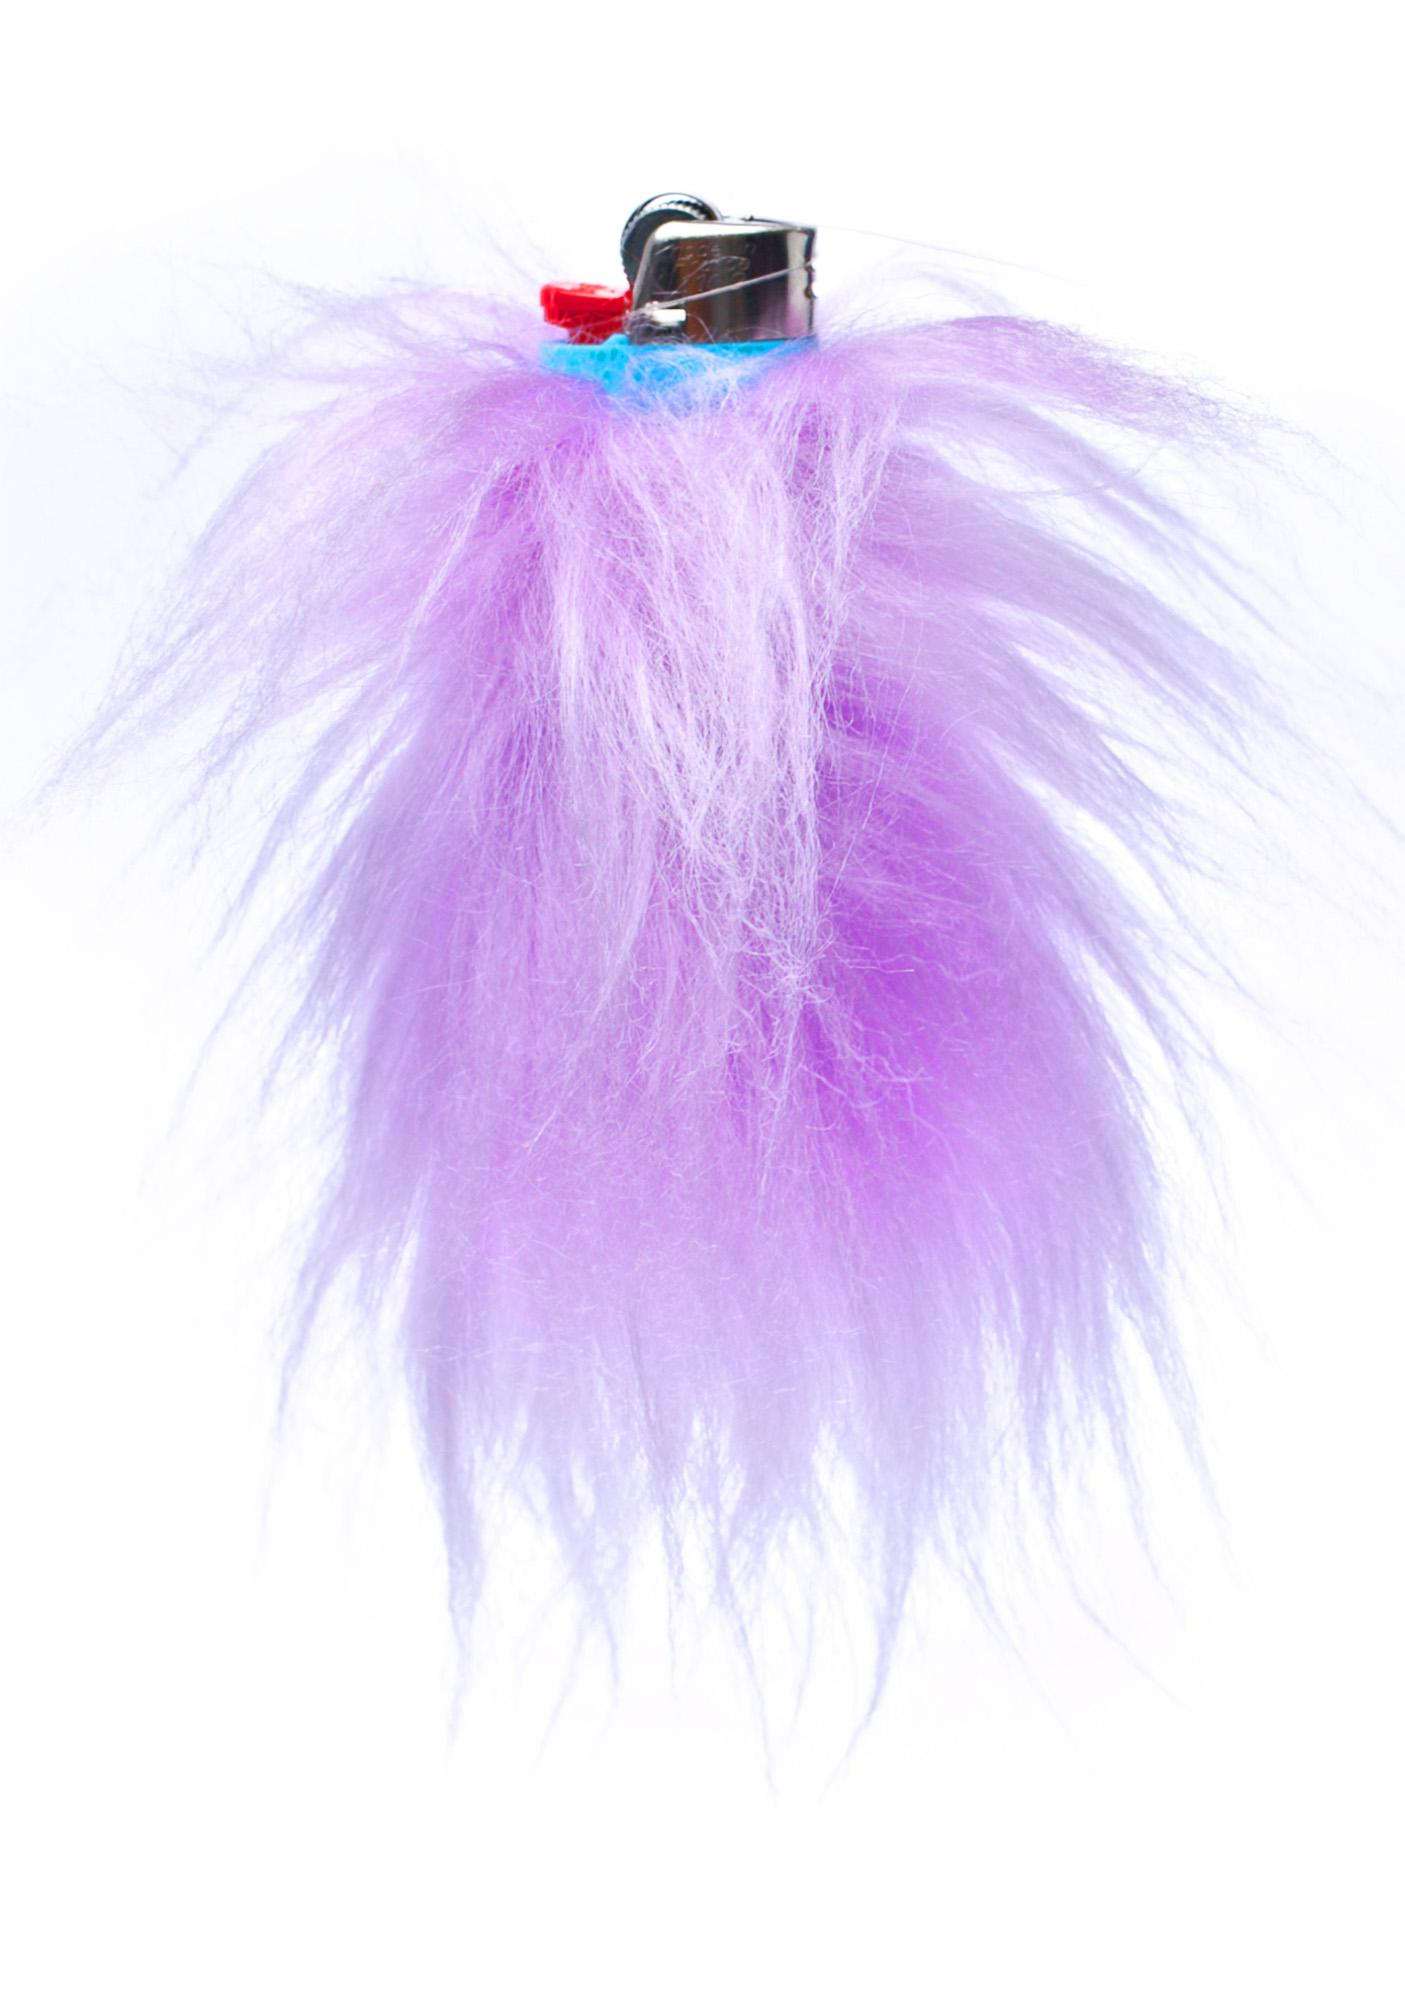 Kerenika Lite Up Lilac Fur Lighter Holder